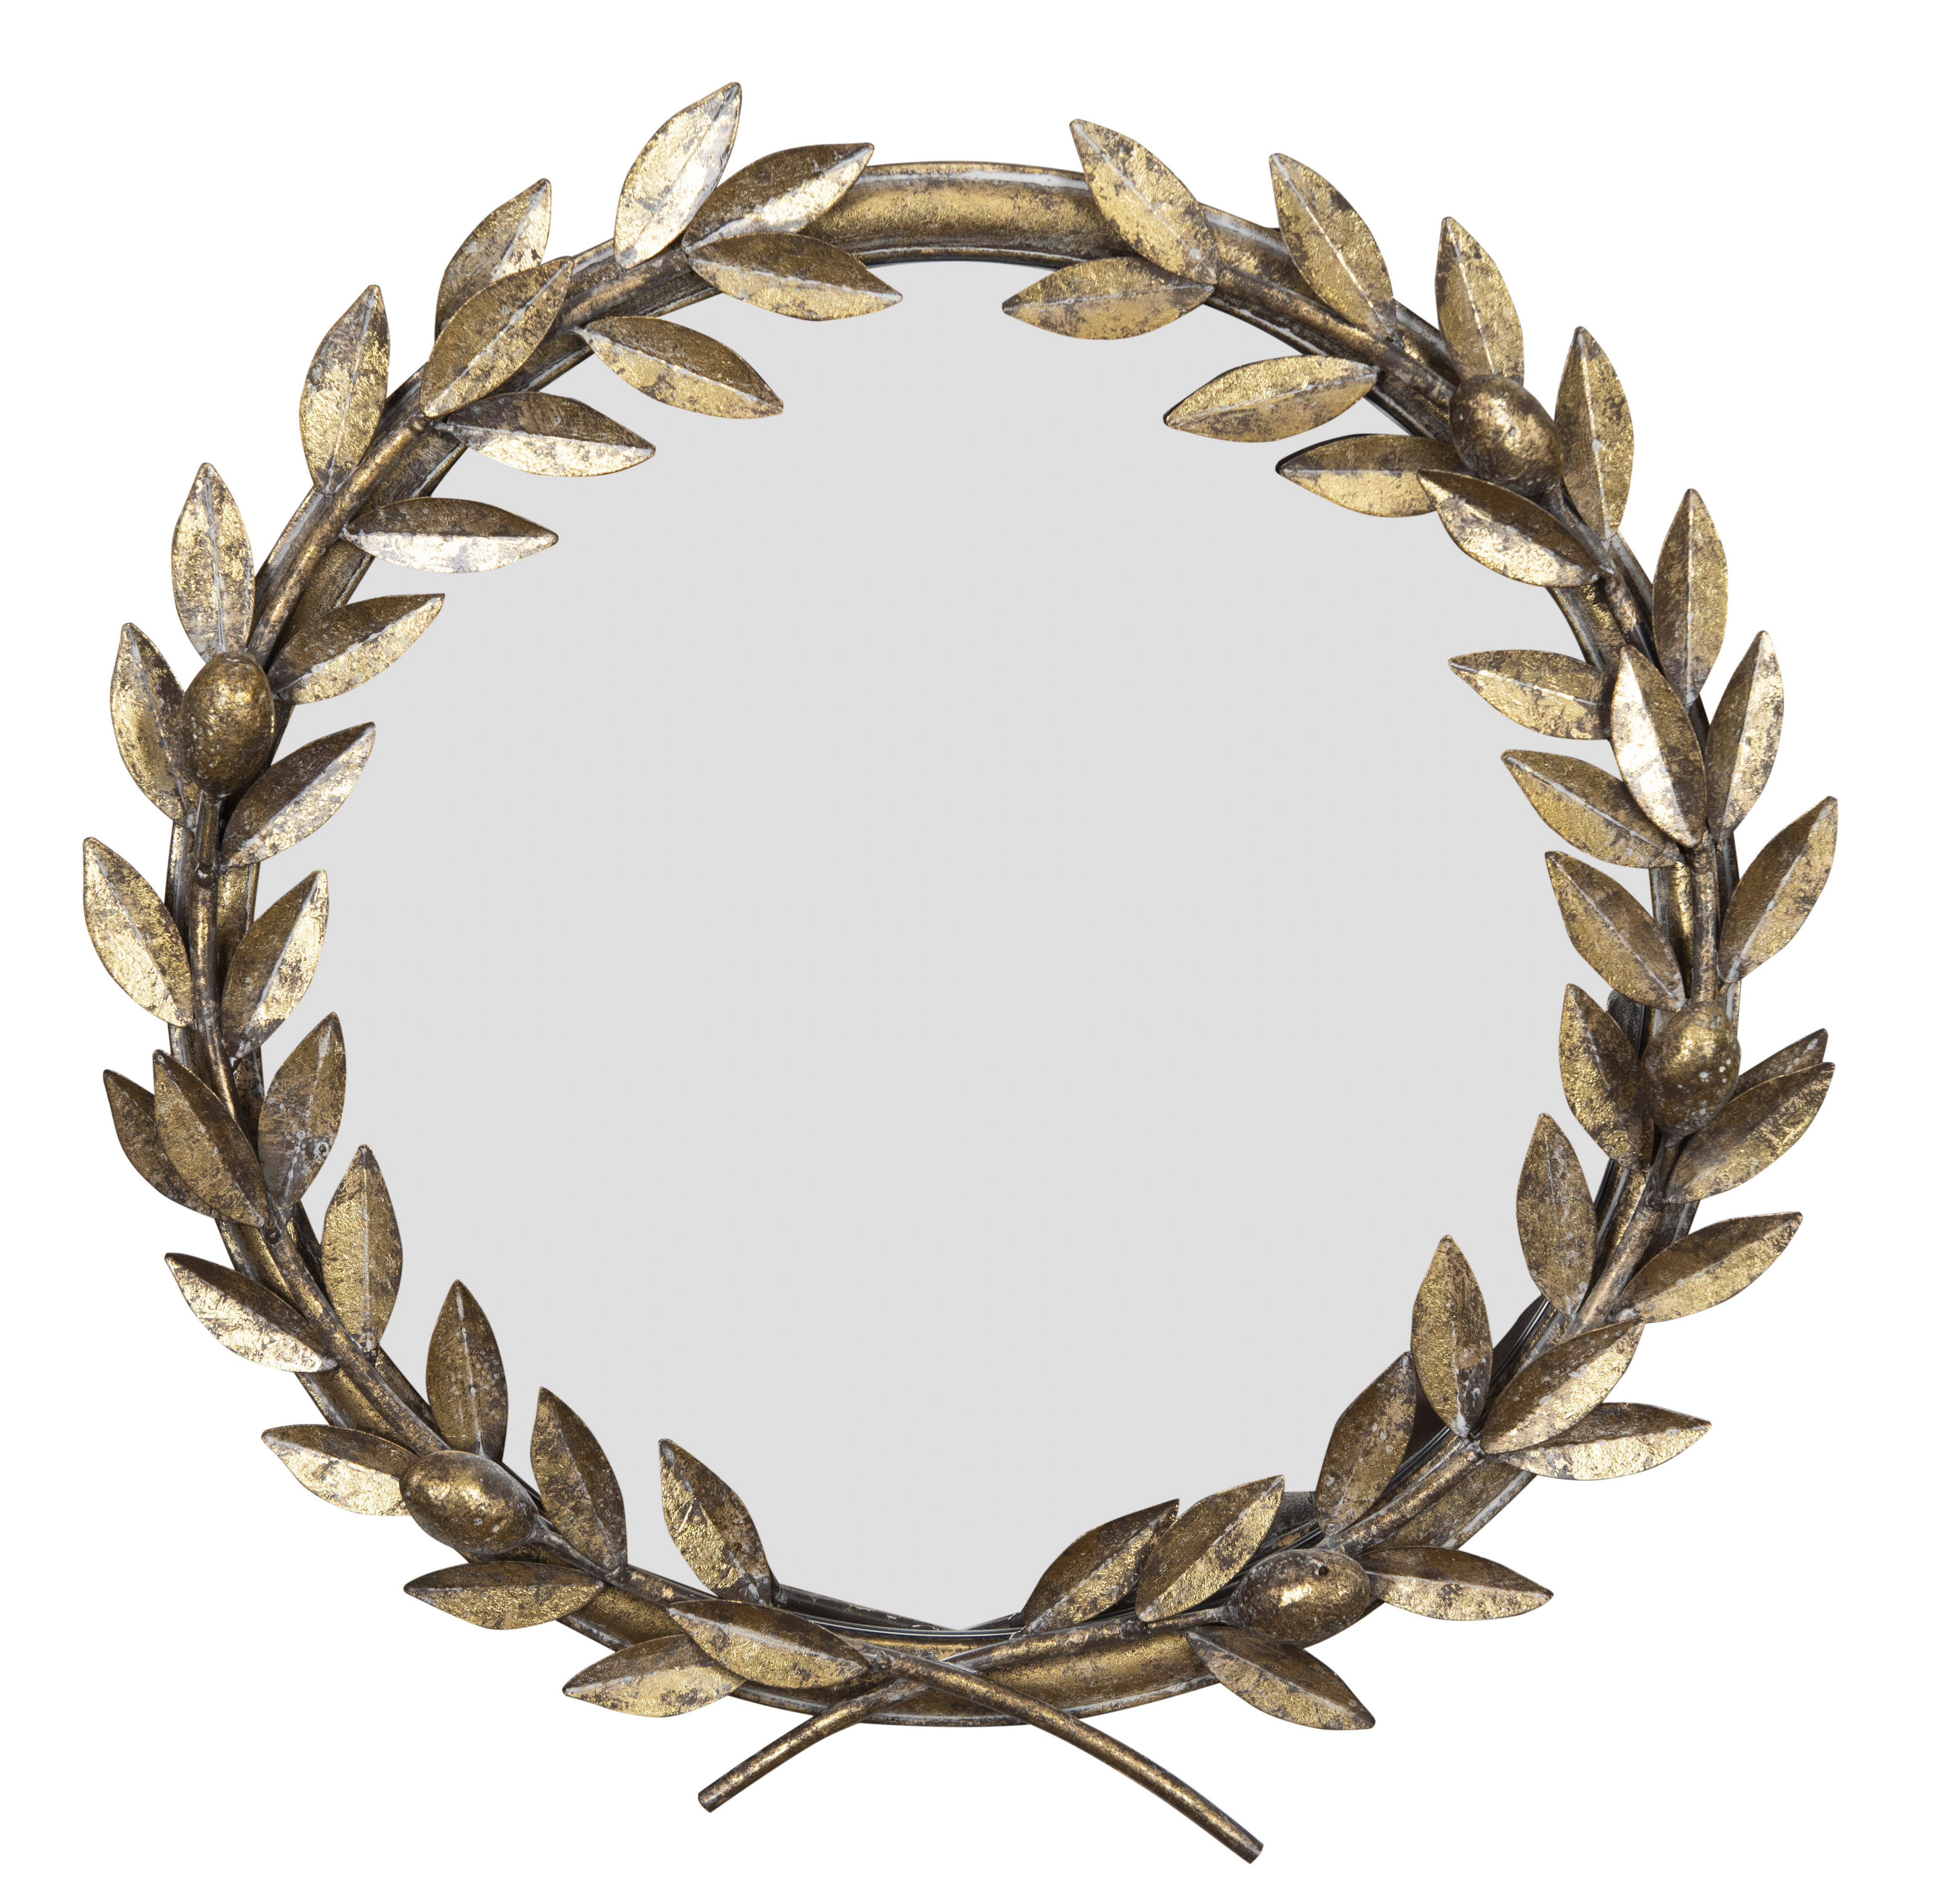 Kaelin Round Laurel Wreath Industrial Accent Mirror With Regard To Favorite Bracelet Traditional Accent Mirrors (Gallery 9 of 20)